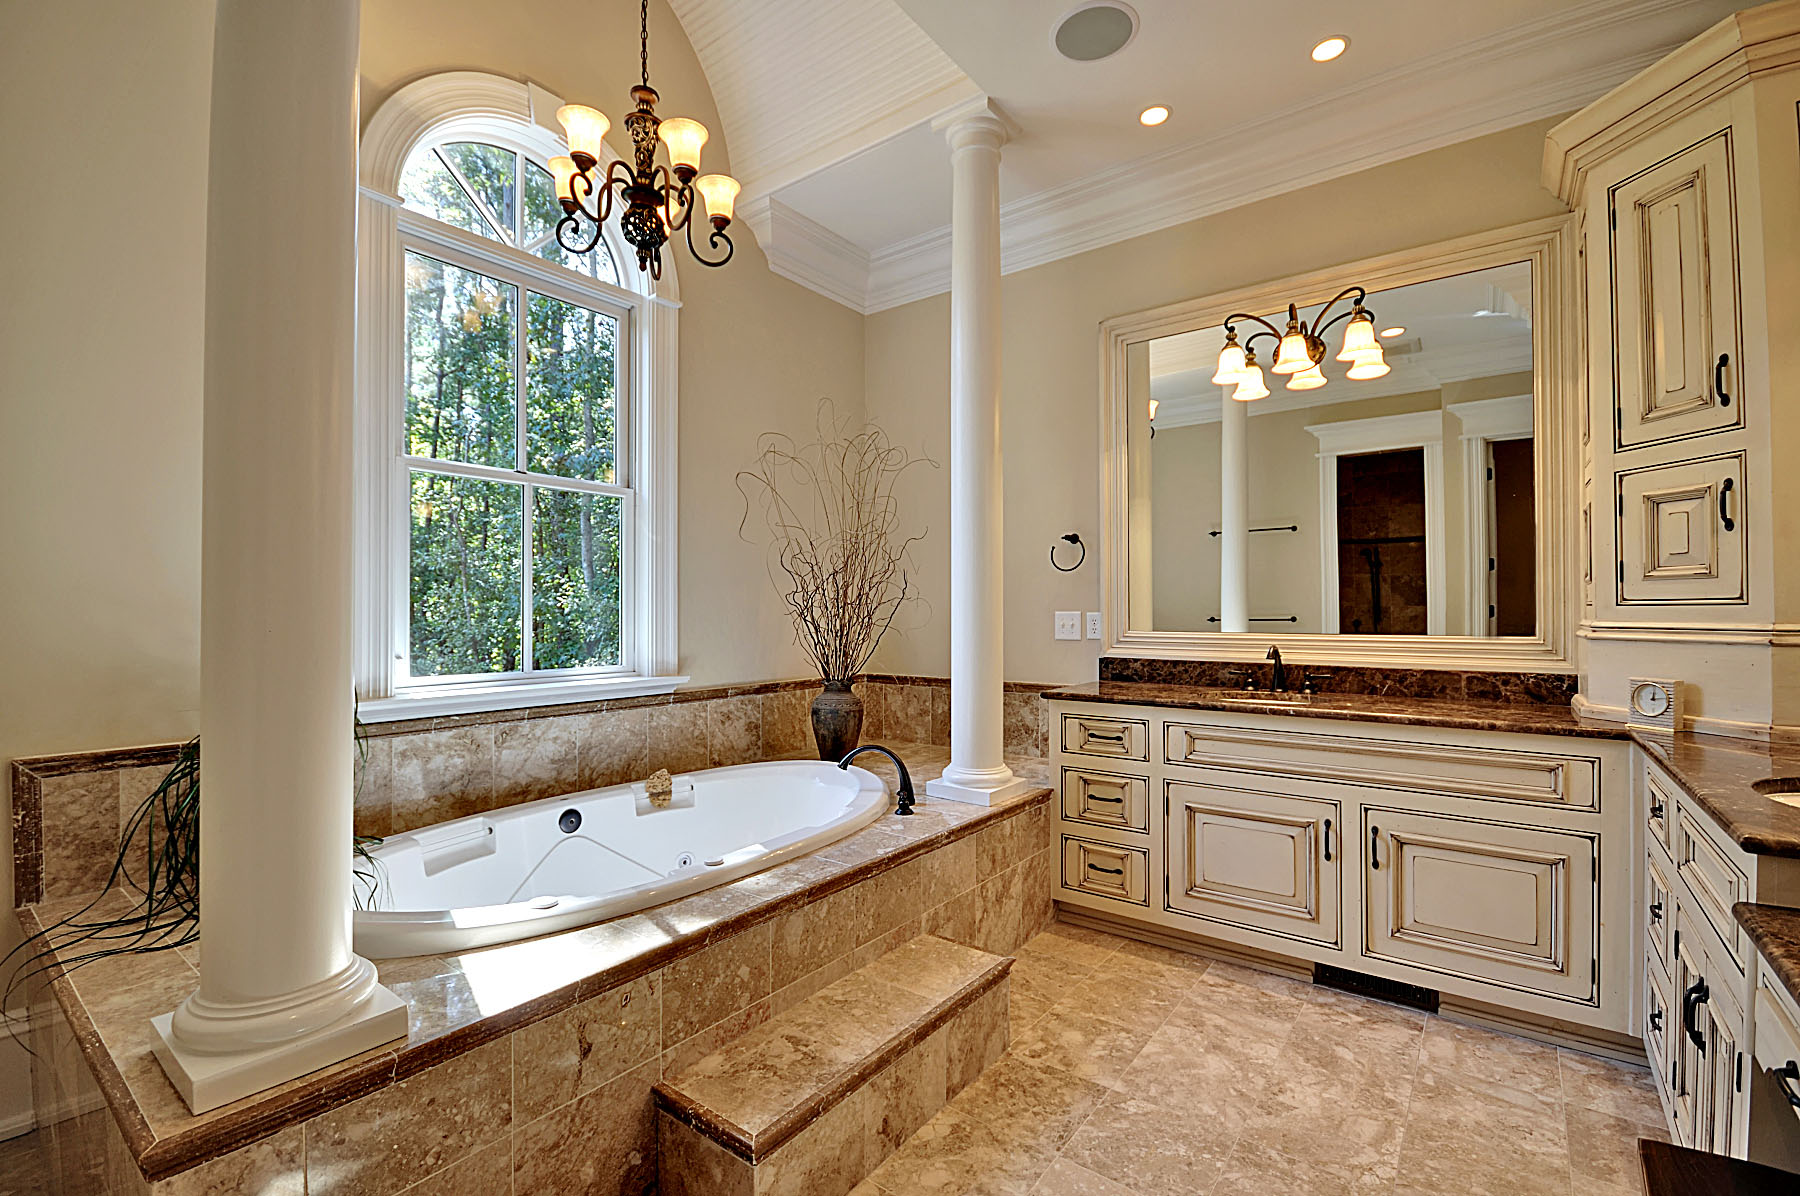 Custom bathroom designs - Photo Gallery Of The Bathroom Remodeling